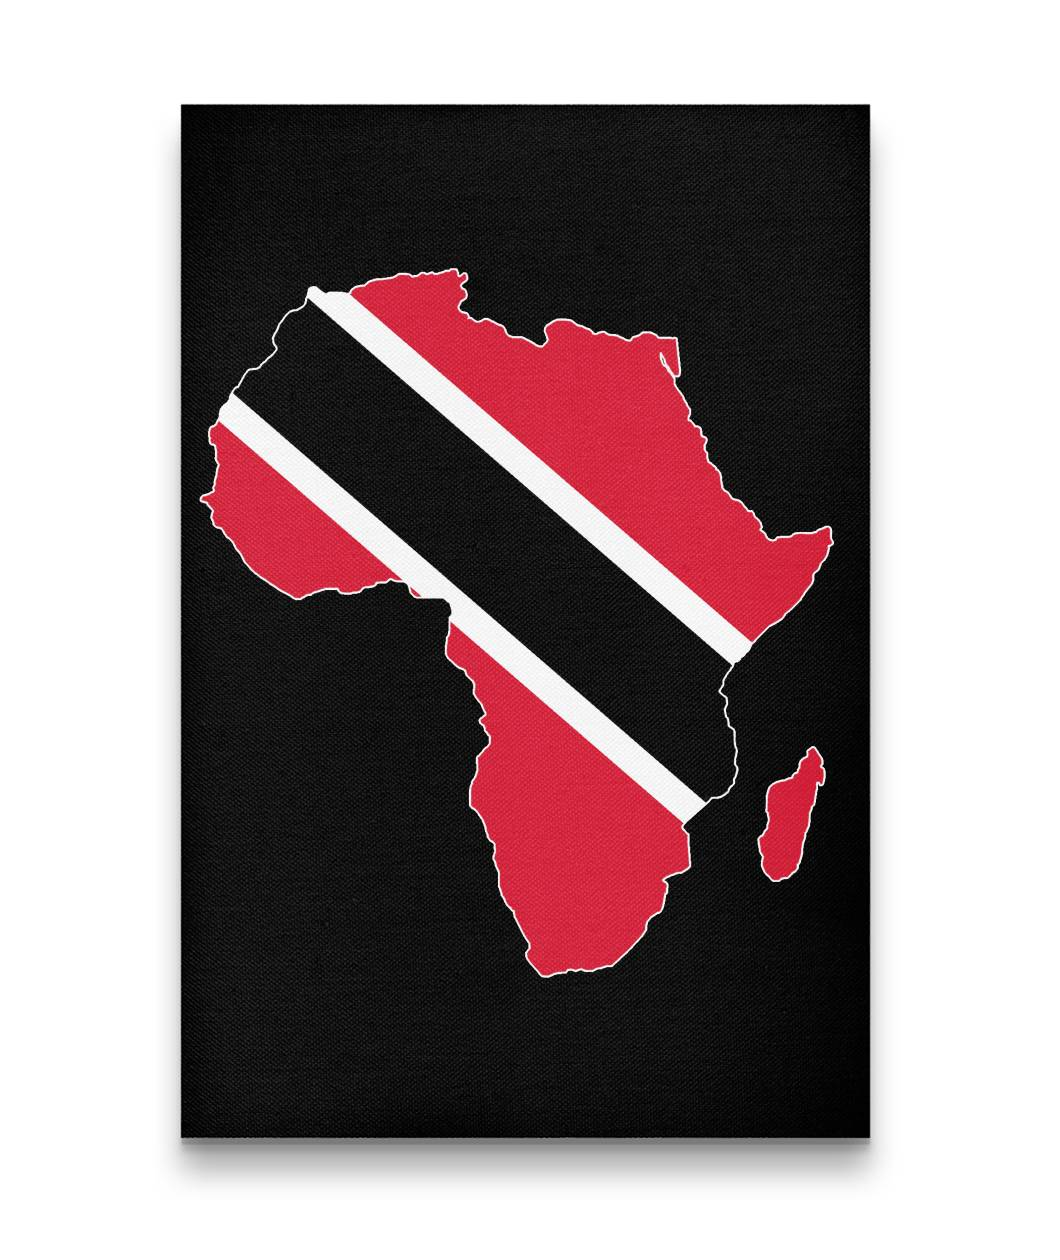 CARIBBEAN CONTINENT TRINIDAD CANVAS ART - Rice & Tees